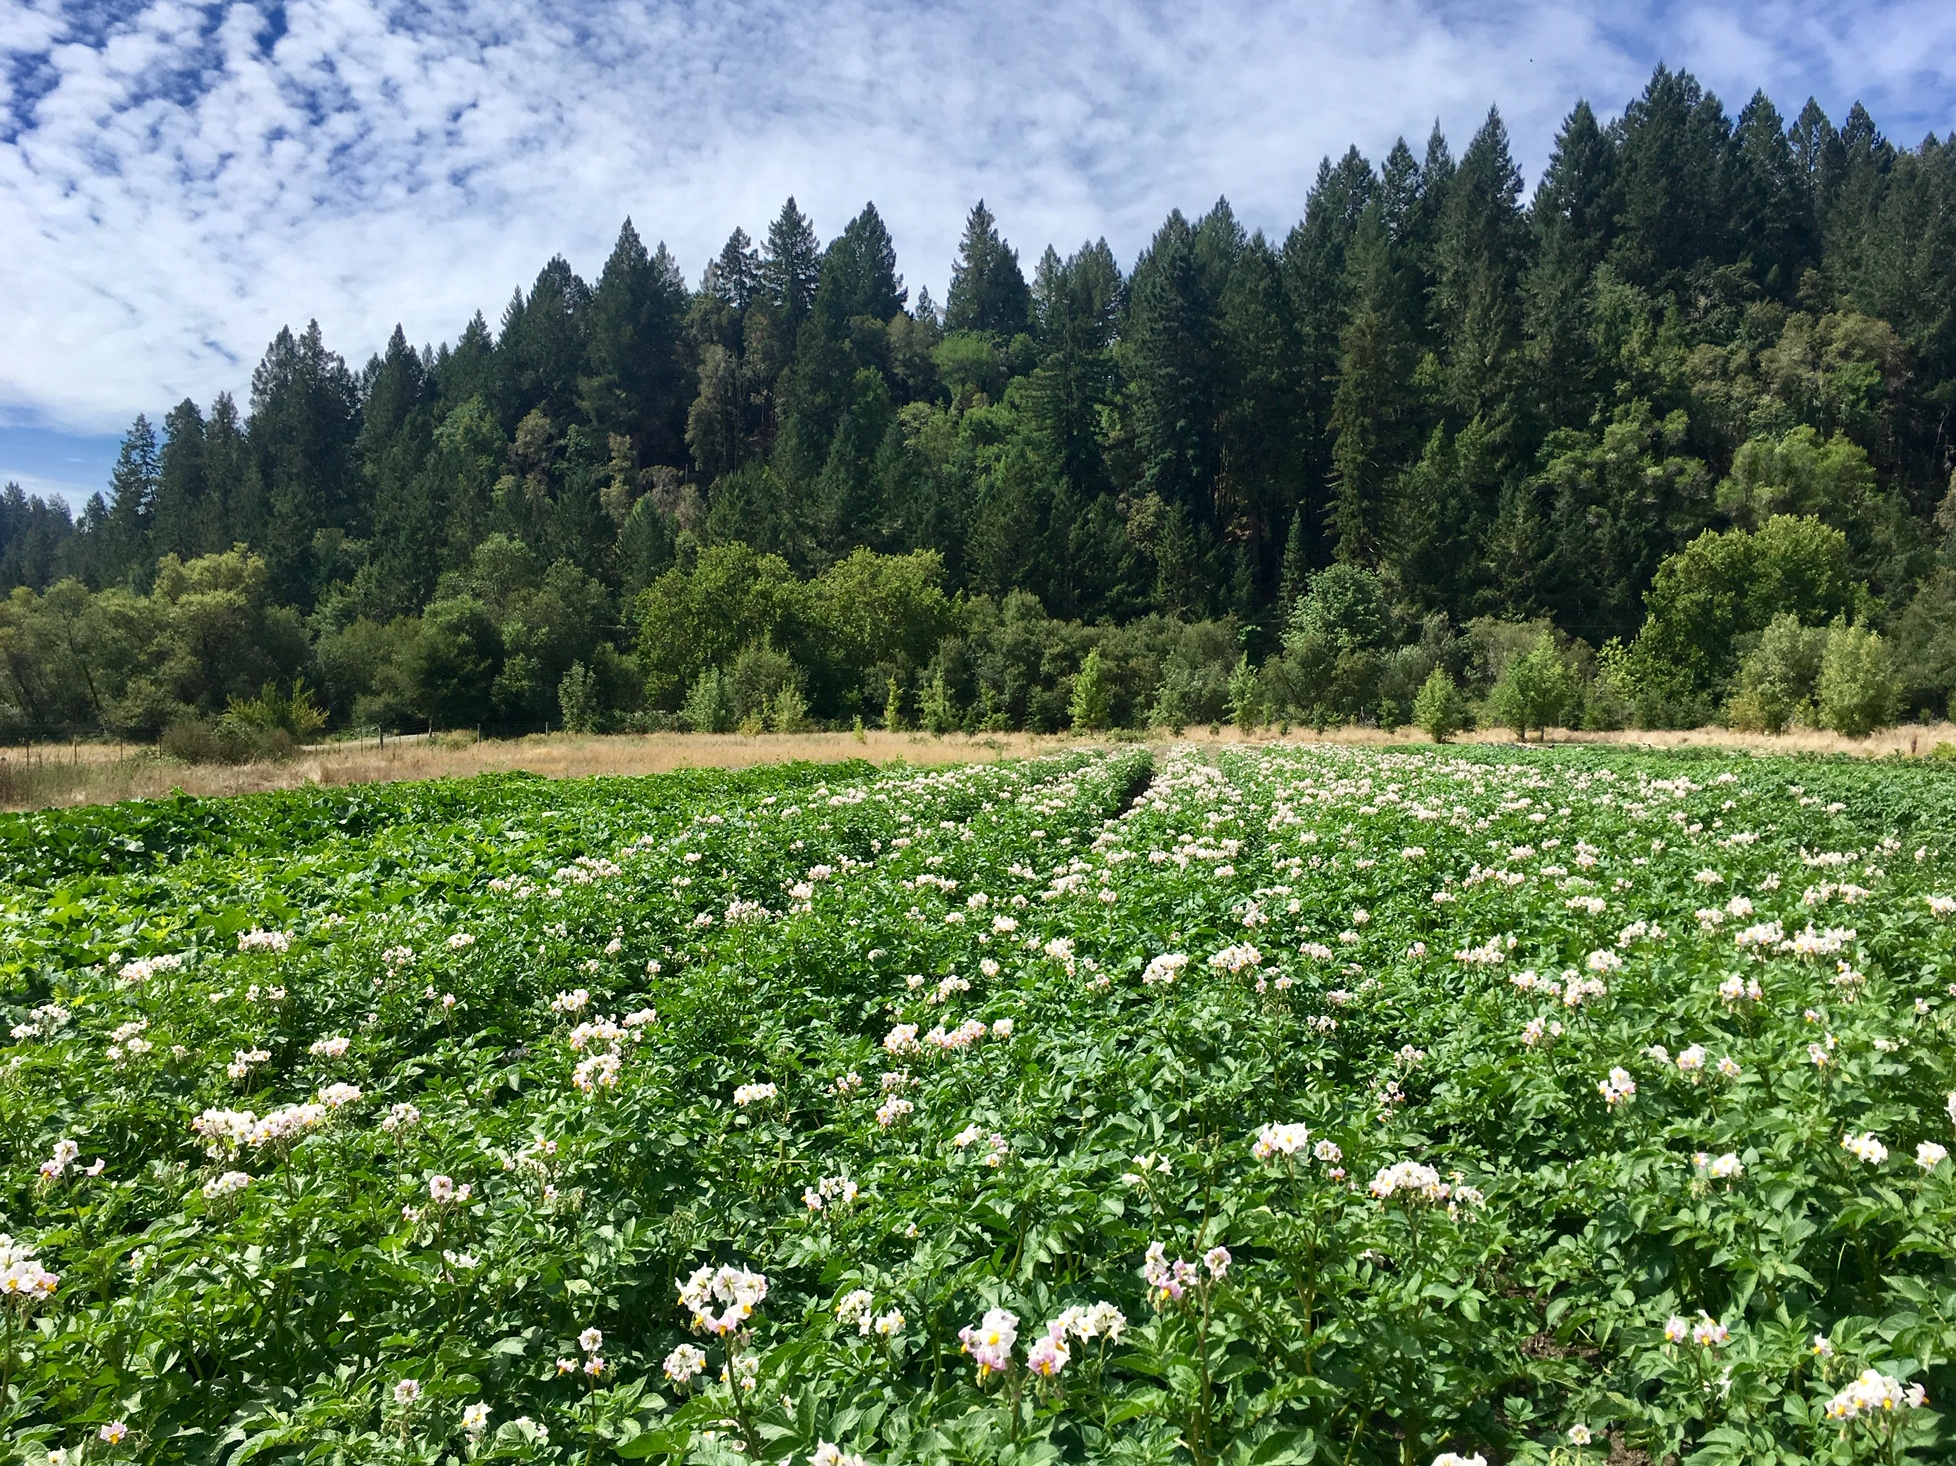 The Desiree Potatoes in full flower. We highly recommend a trip to field 3 which, aside from a few beds, is a full canopy of greenery photosynthesizing fall food for us!